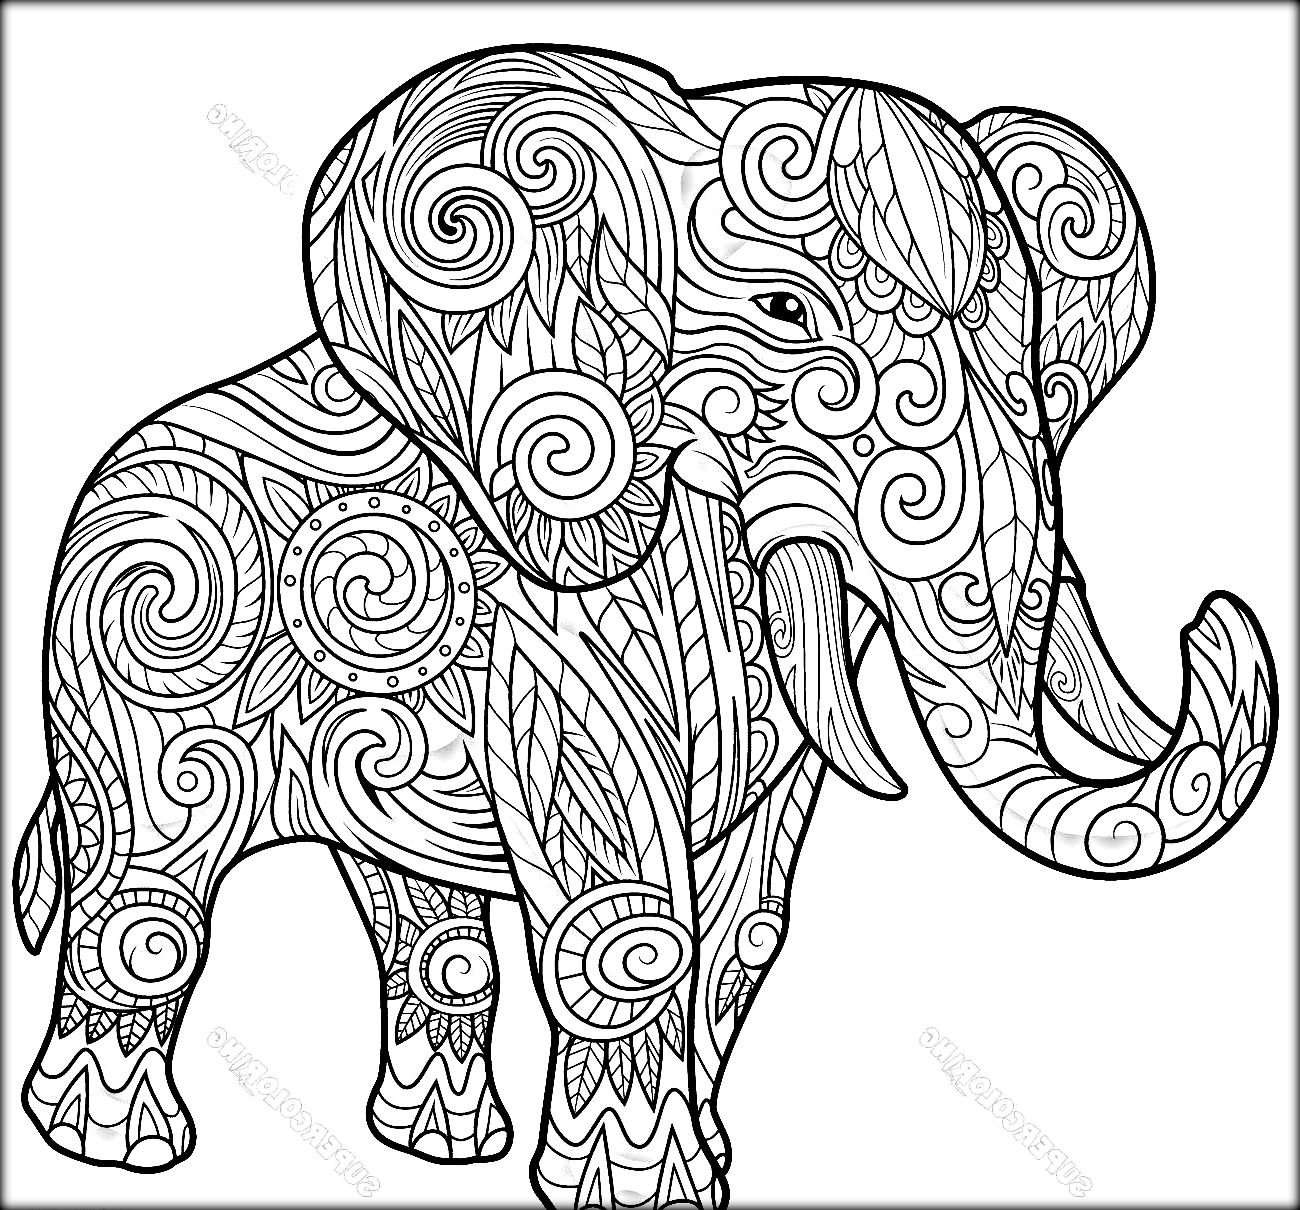 hard coloring pages of elephants bltidm demon coloring pages for adults 1300x1210 hard elephant coloring pages